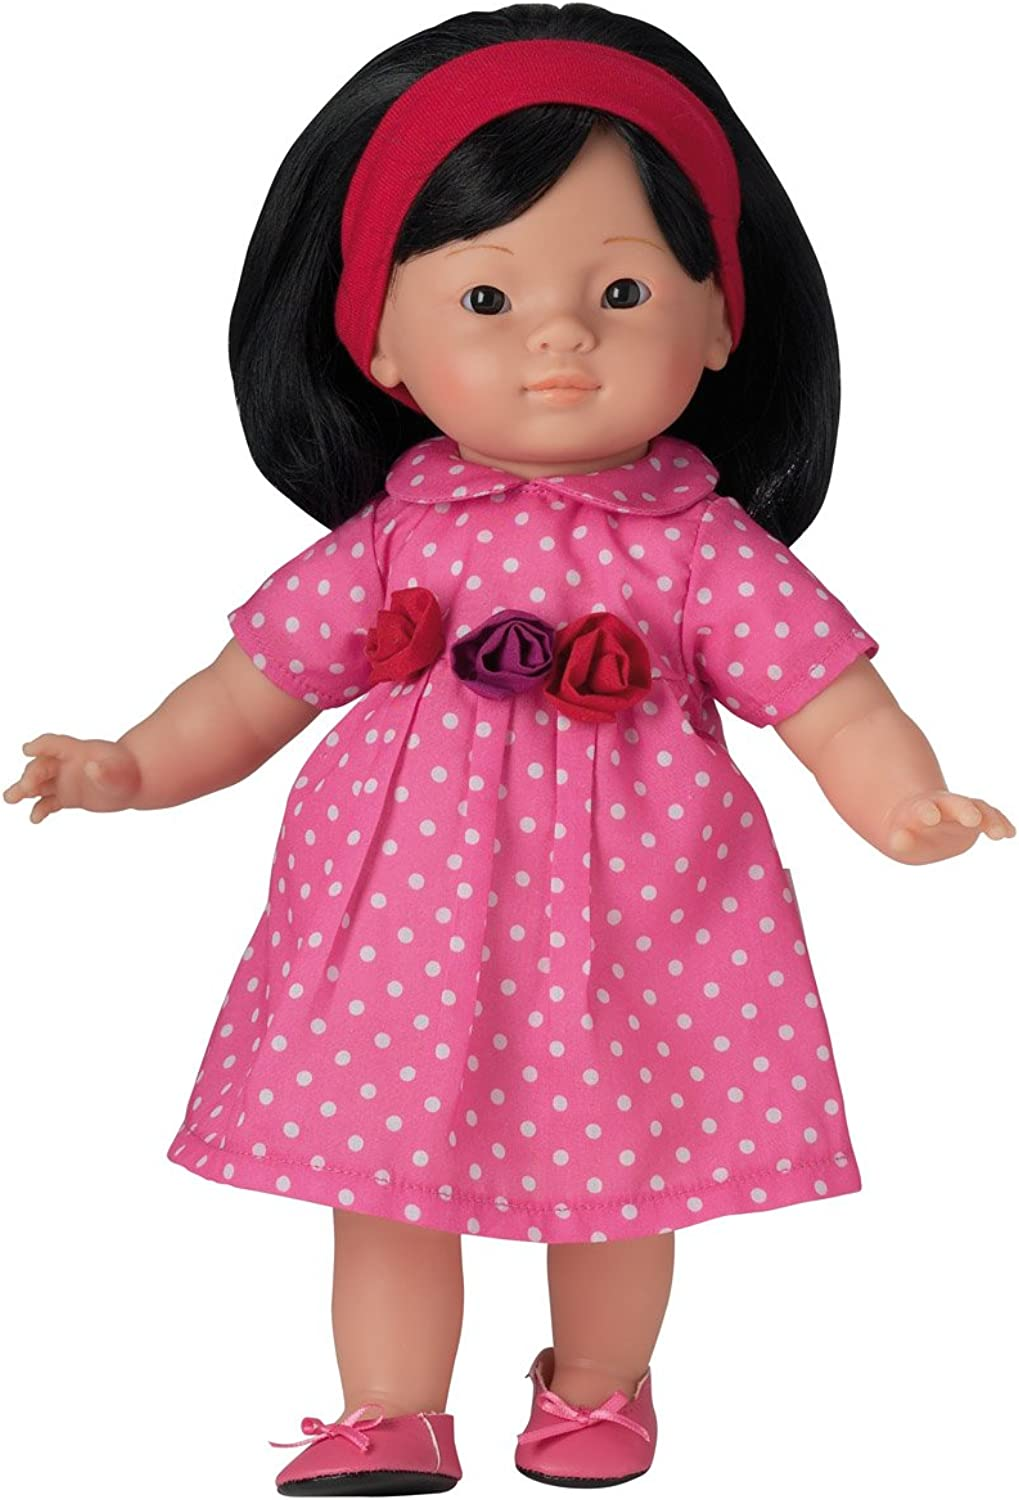 Cgoldlle Miss Cgoldlle Classic 14  Doll (Lou)